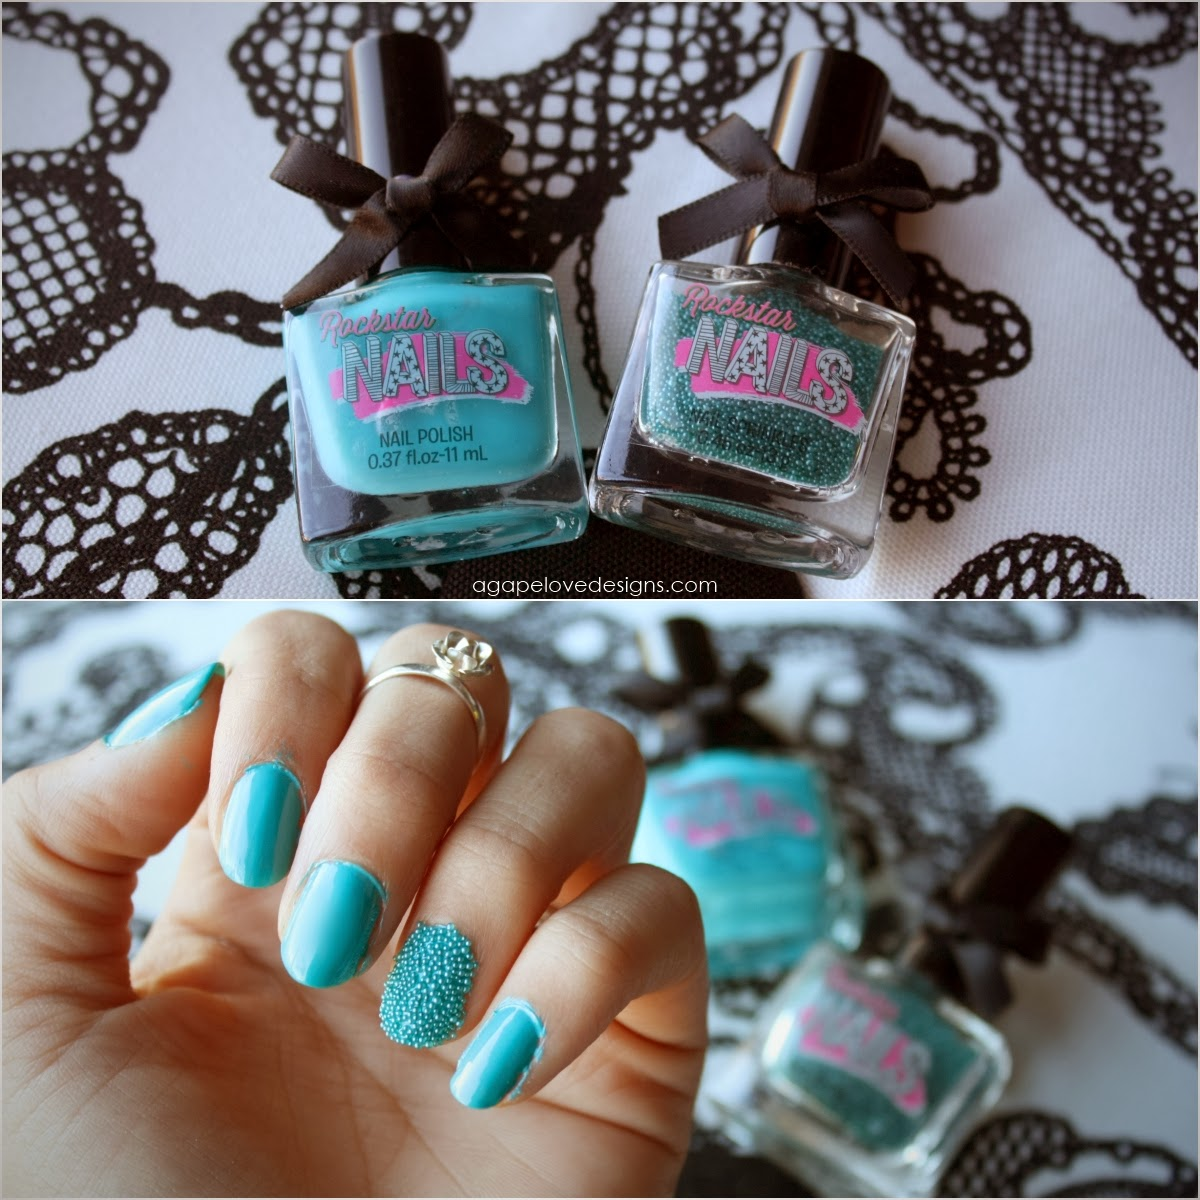 Agape Love Designs: Rockstar Nails Review & Feb BB5 Unboxing